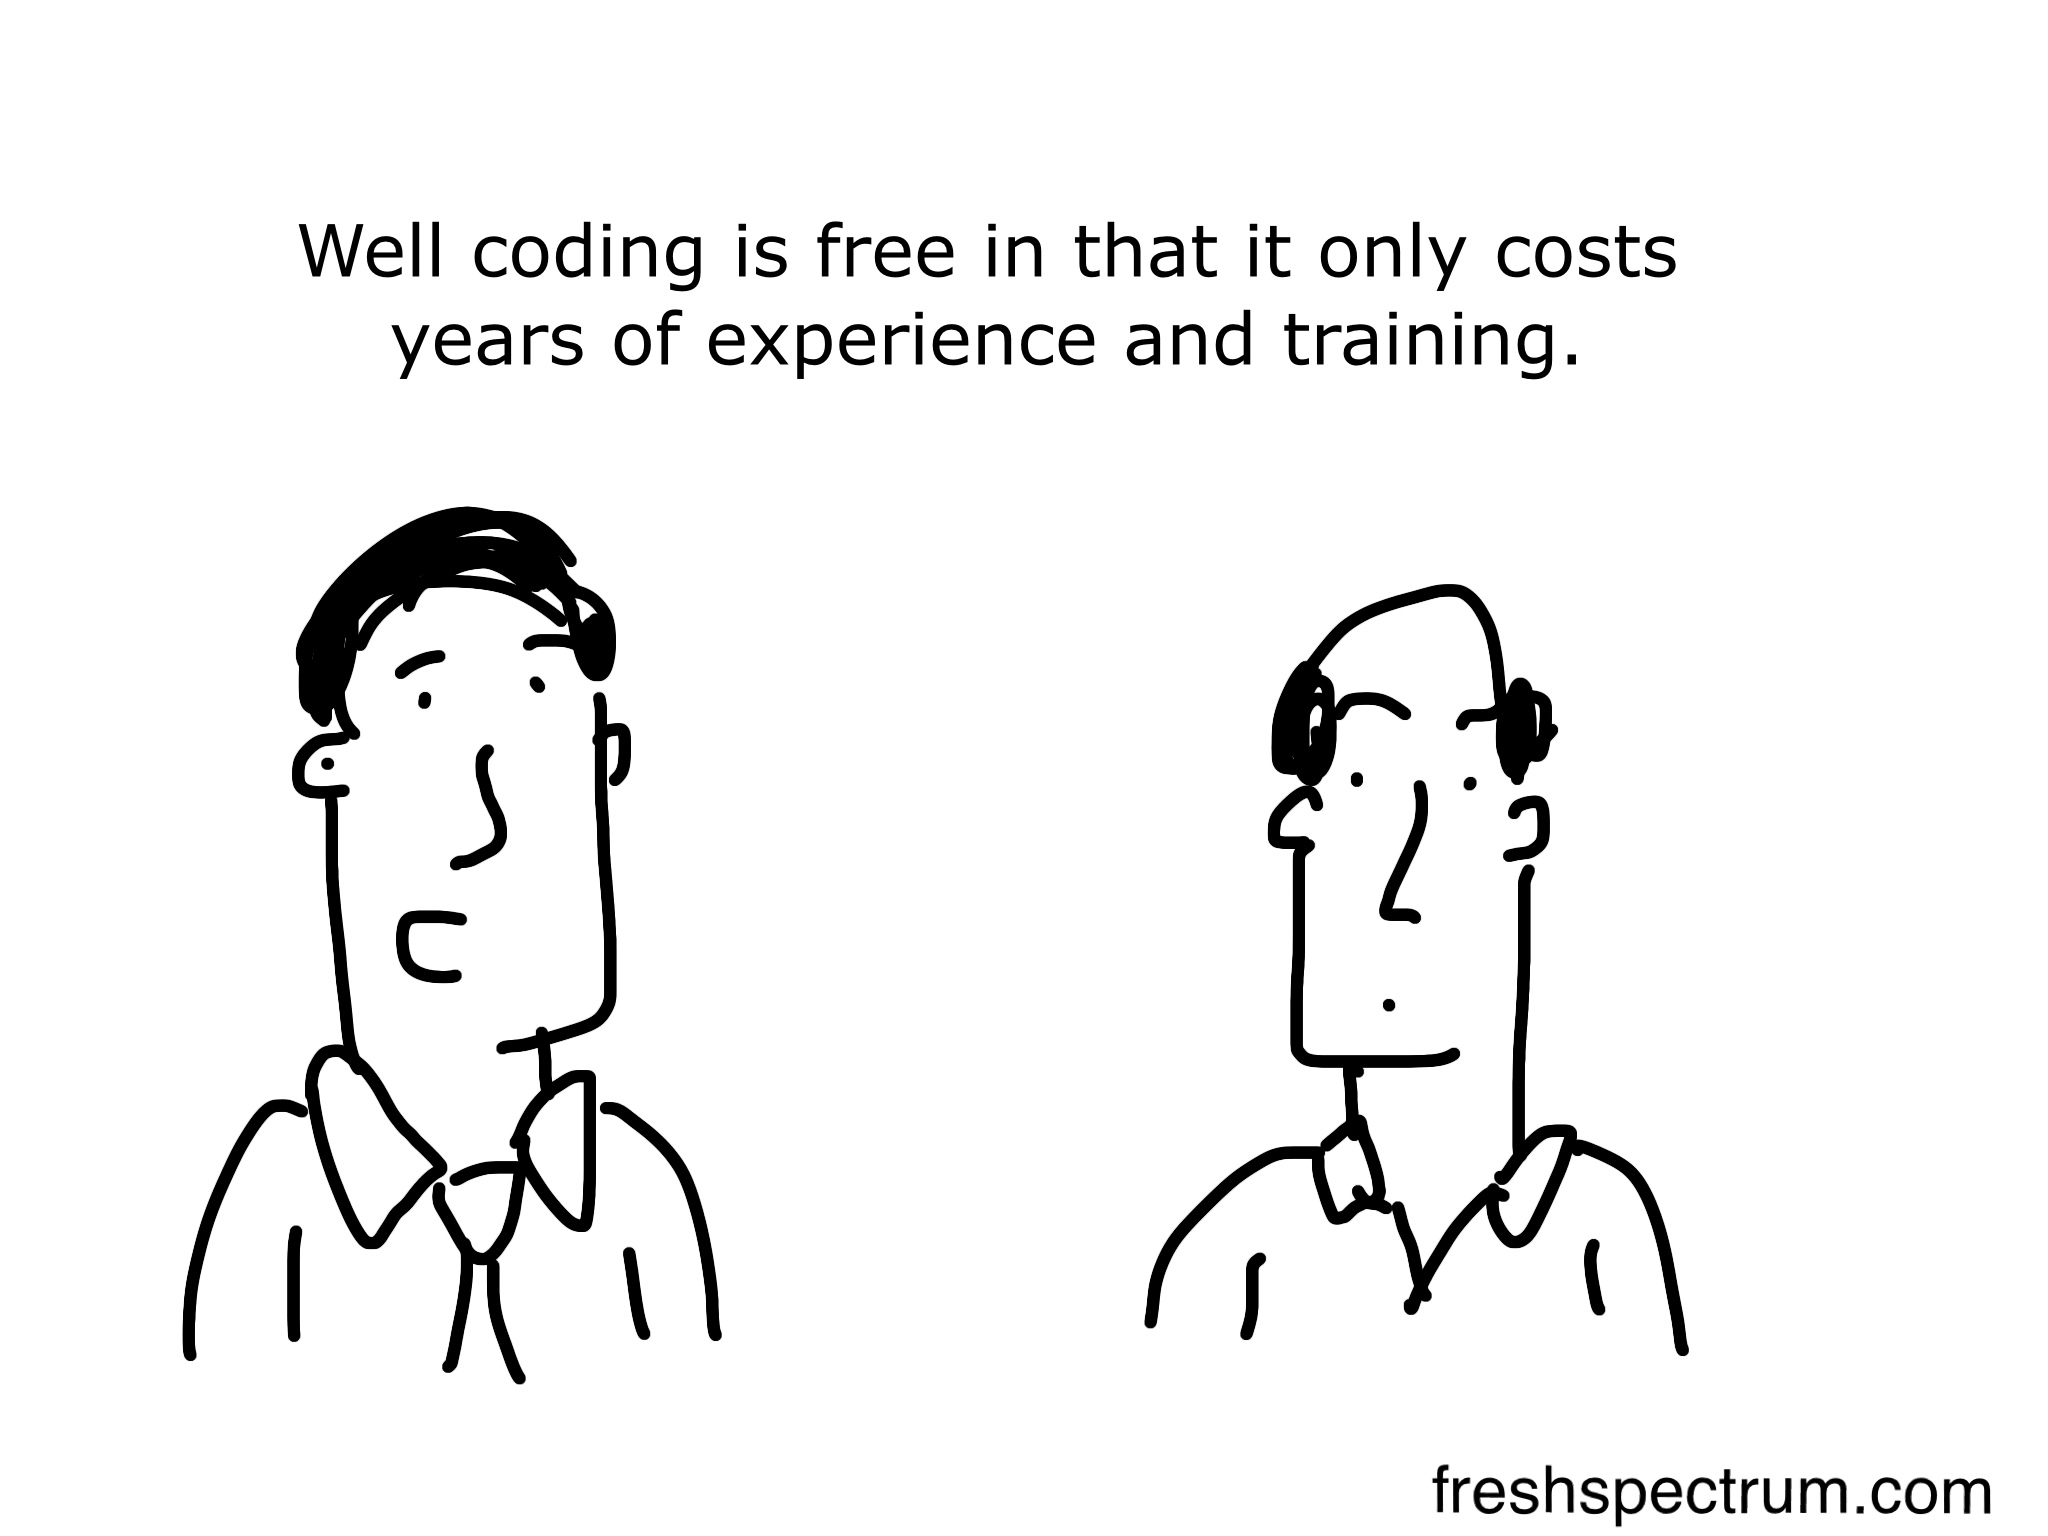 Coding is free cartoon by Chris Lysy